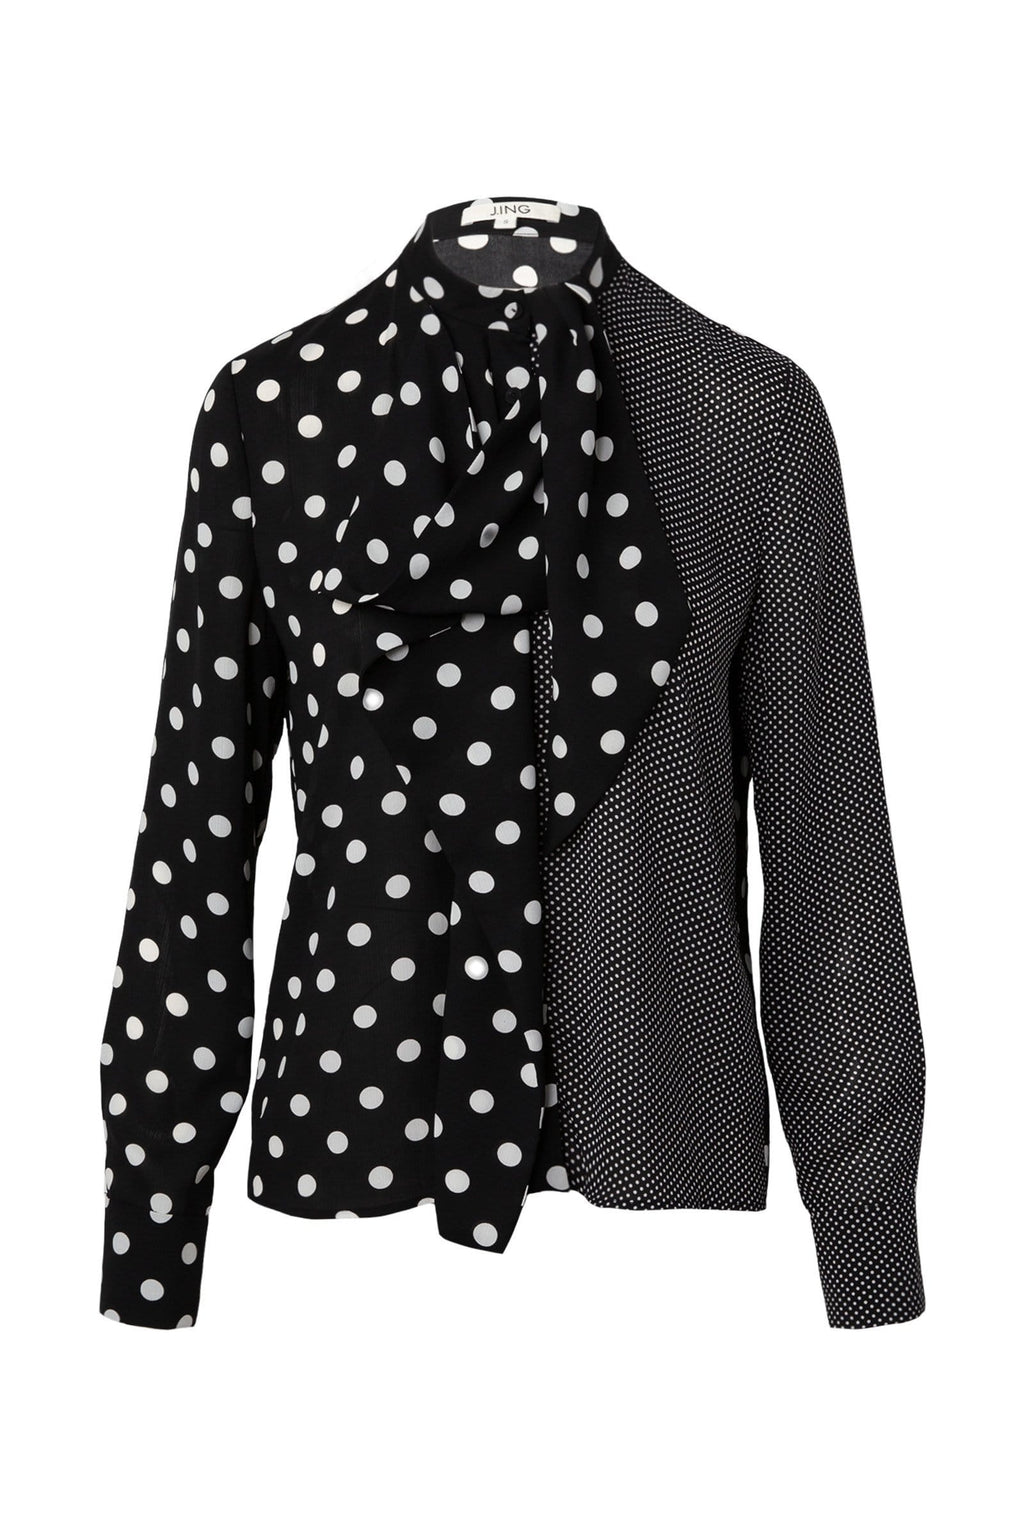 Pippa Polka Dot Blouse by J.ING Women's Clothing